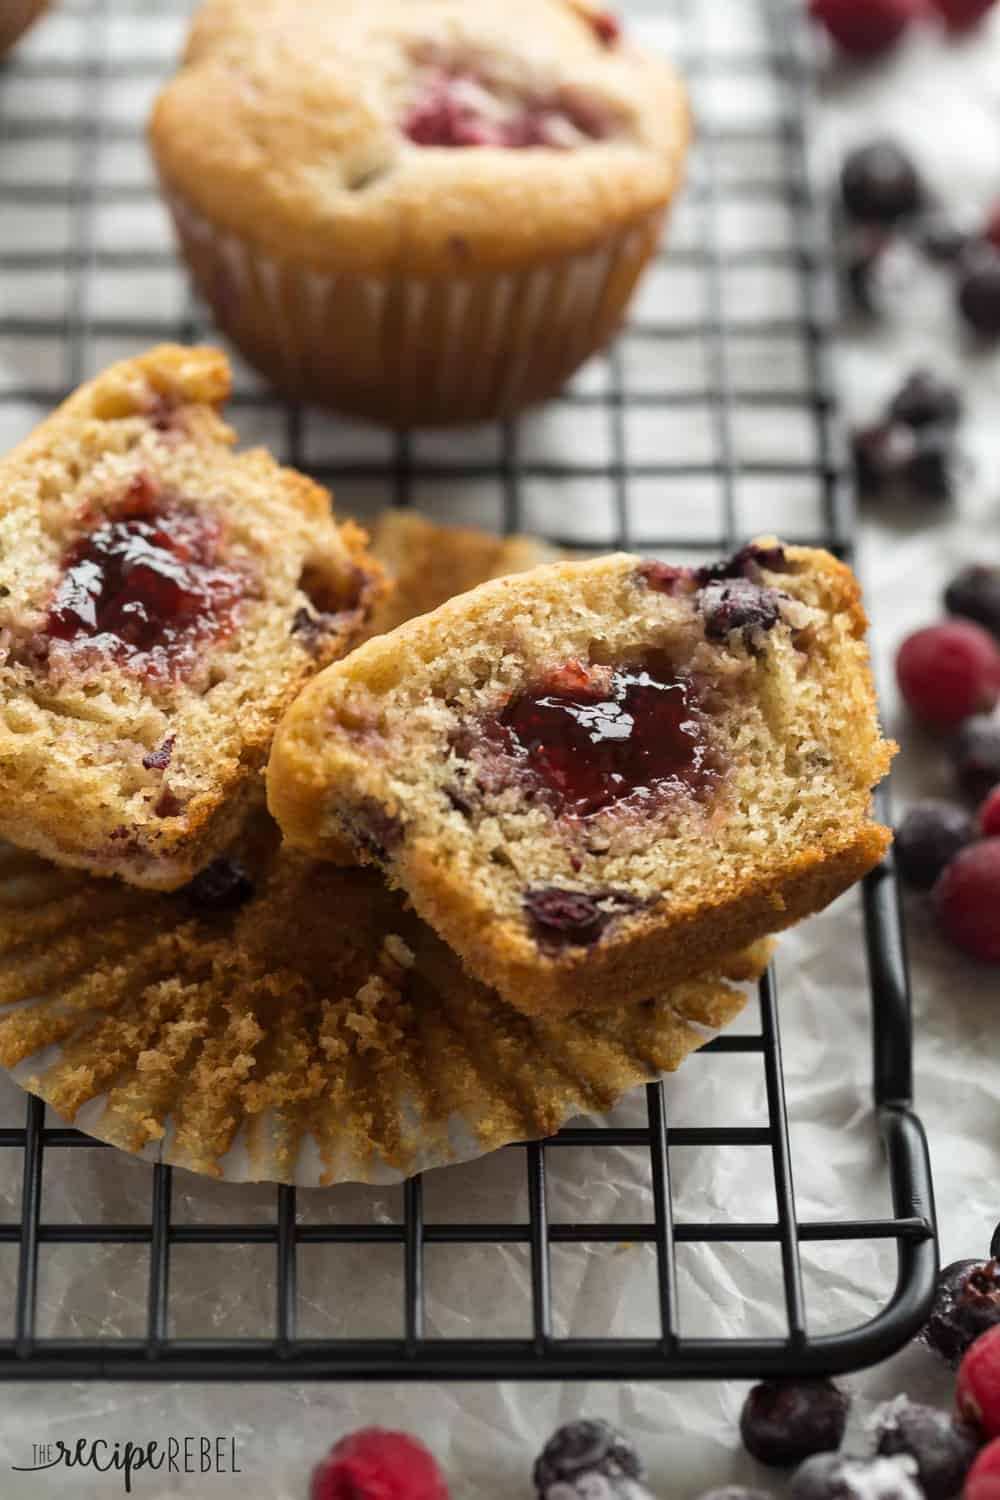 These Fruit Explosion Muffins cut in half to revel inside.